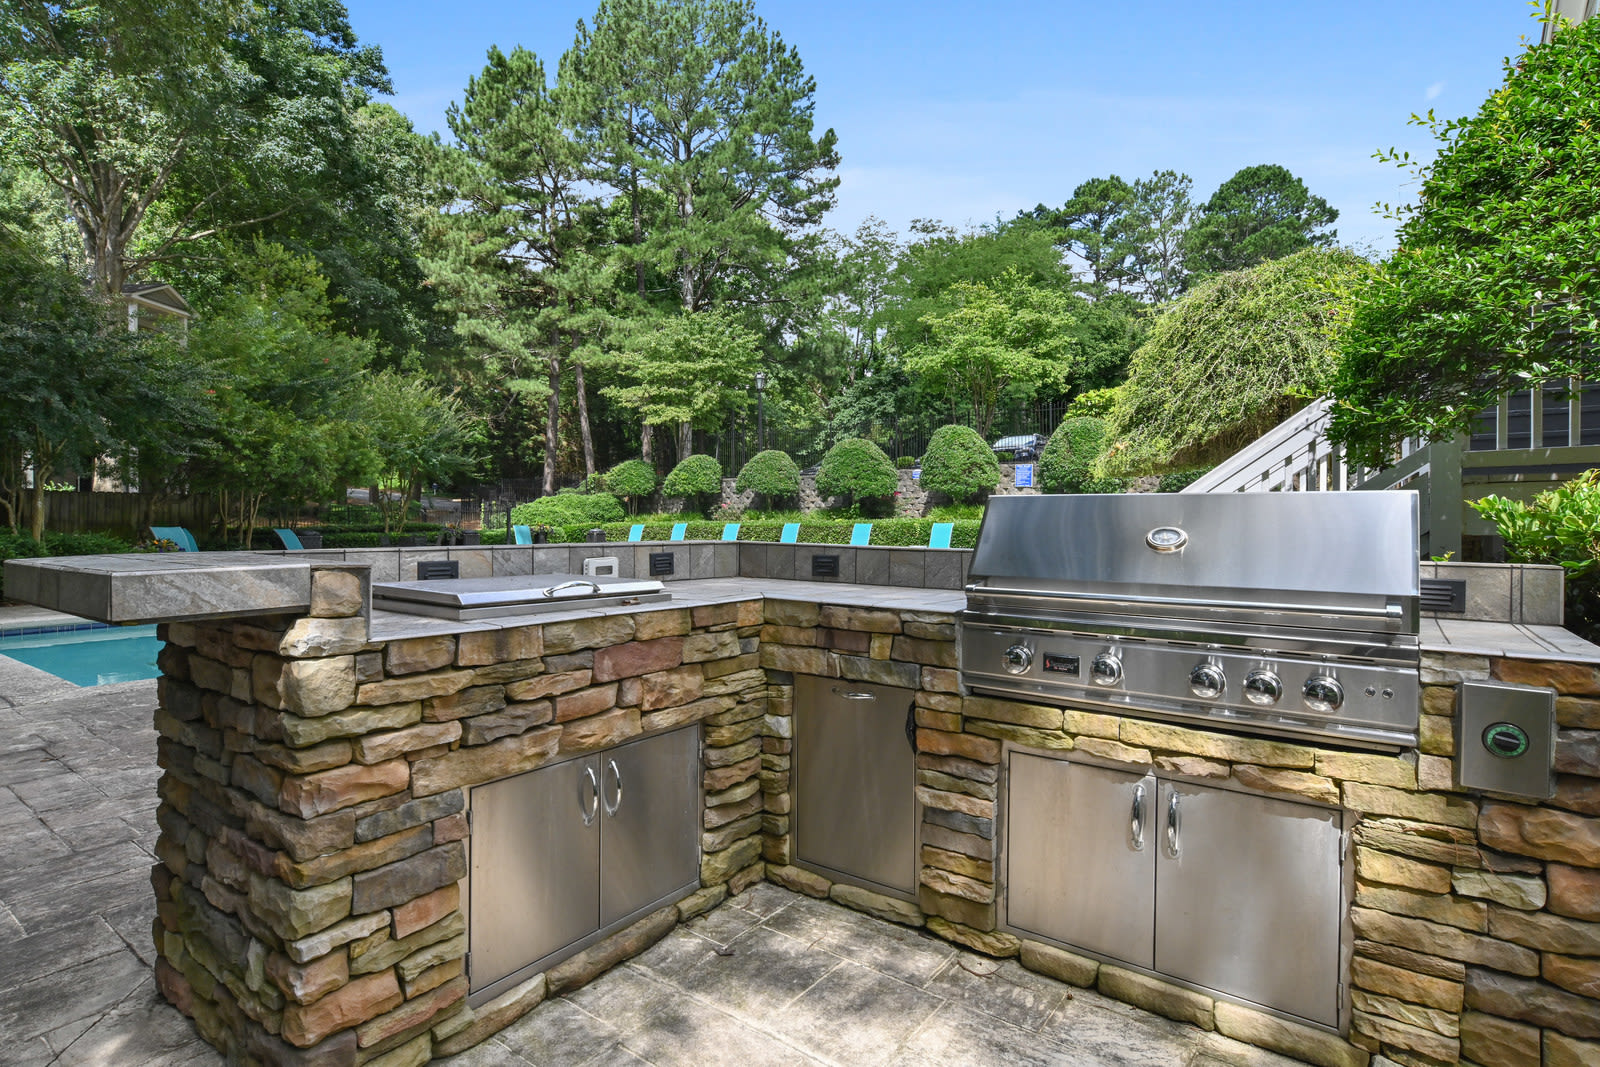 Our Beautiful Apartments in Roswell, Georgia showcase a community BBQ area